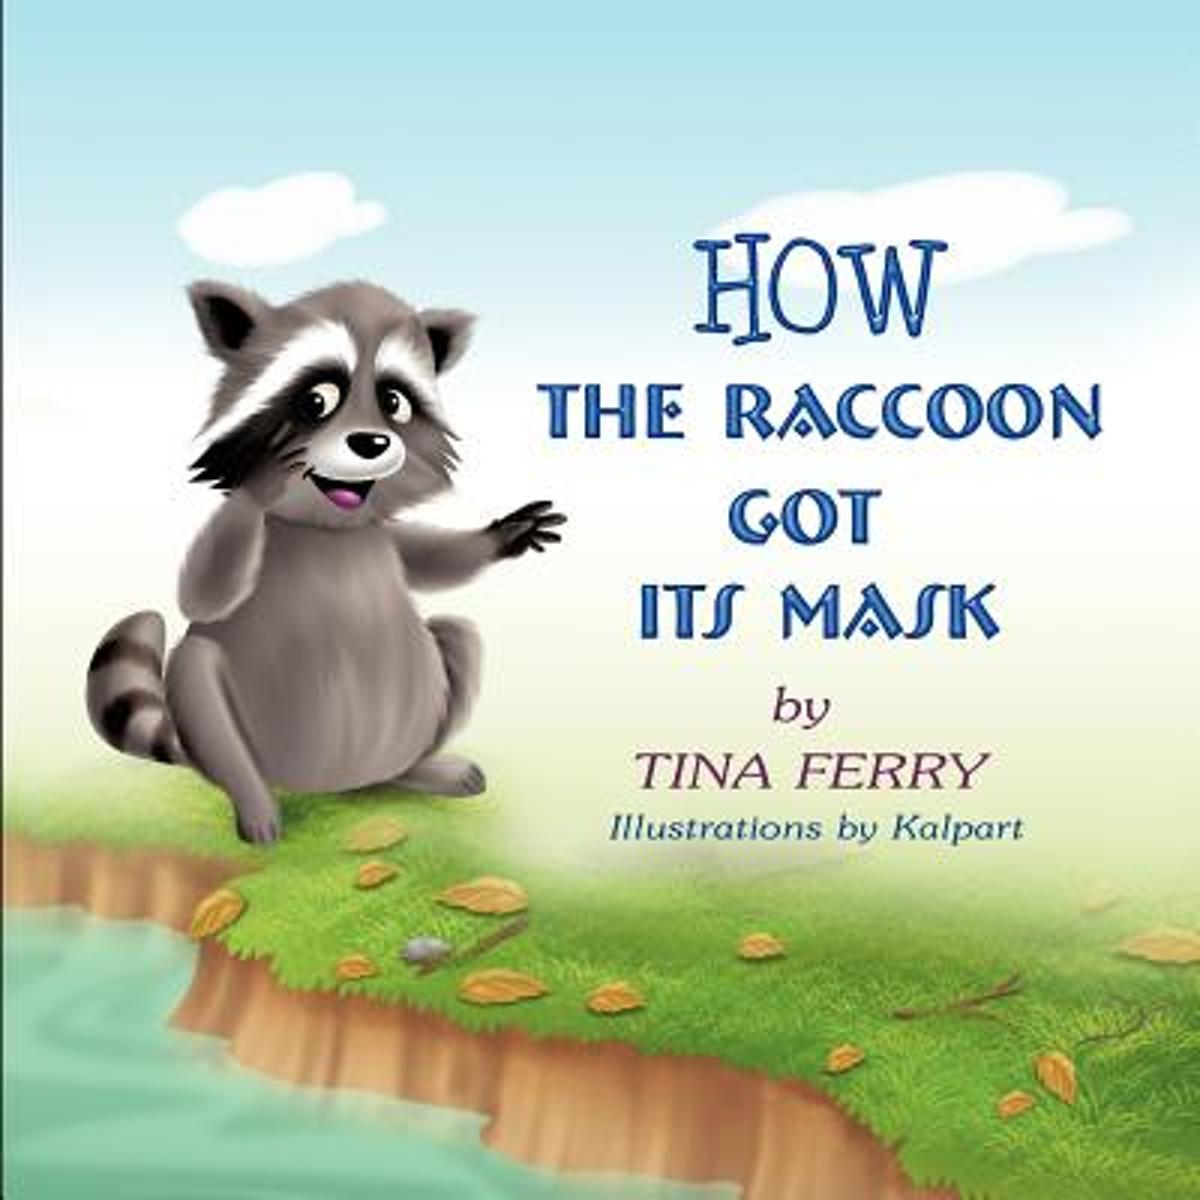 How the Raccoon Got Its Mask